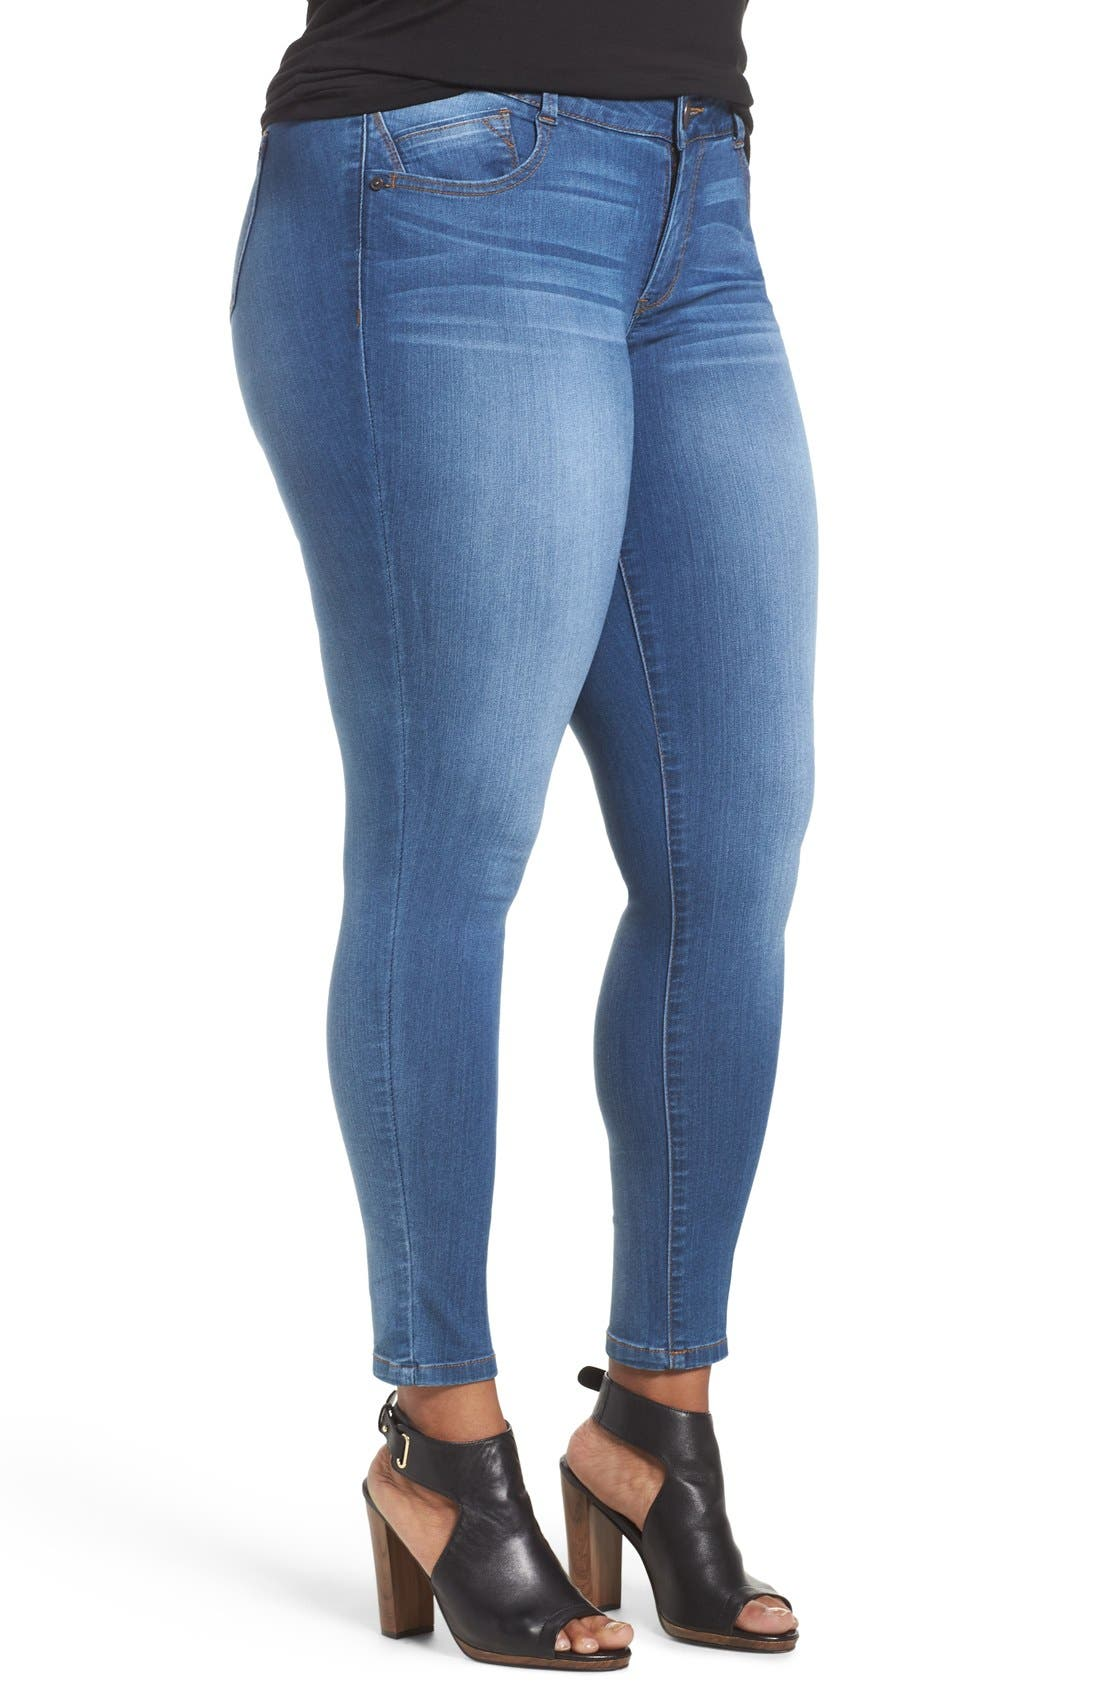 Ab-solution Stretch Skinny Jeans,                             Alternate thumbnail 4, color,                             BLUE